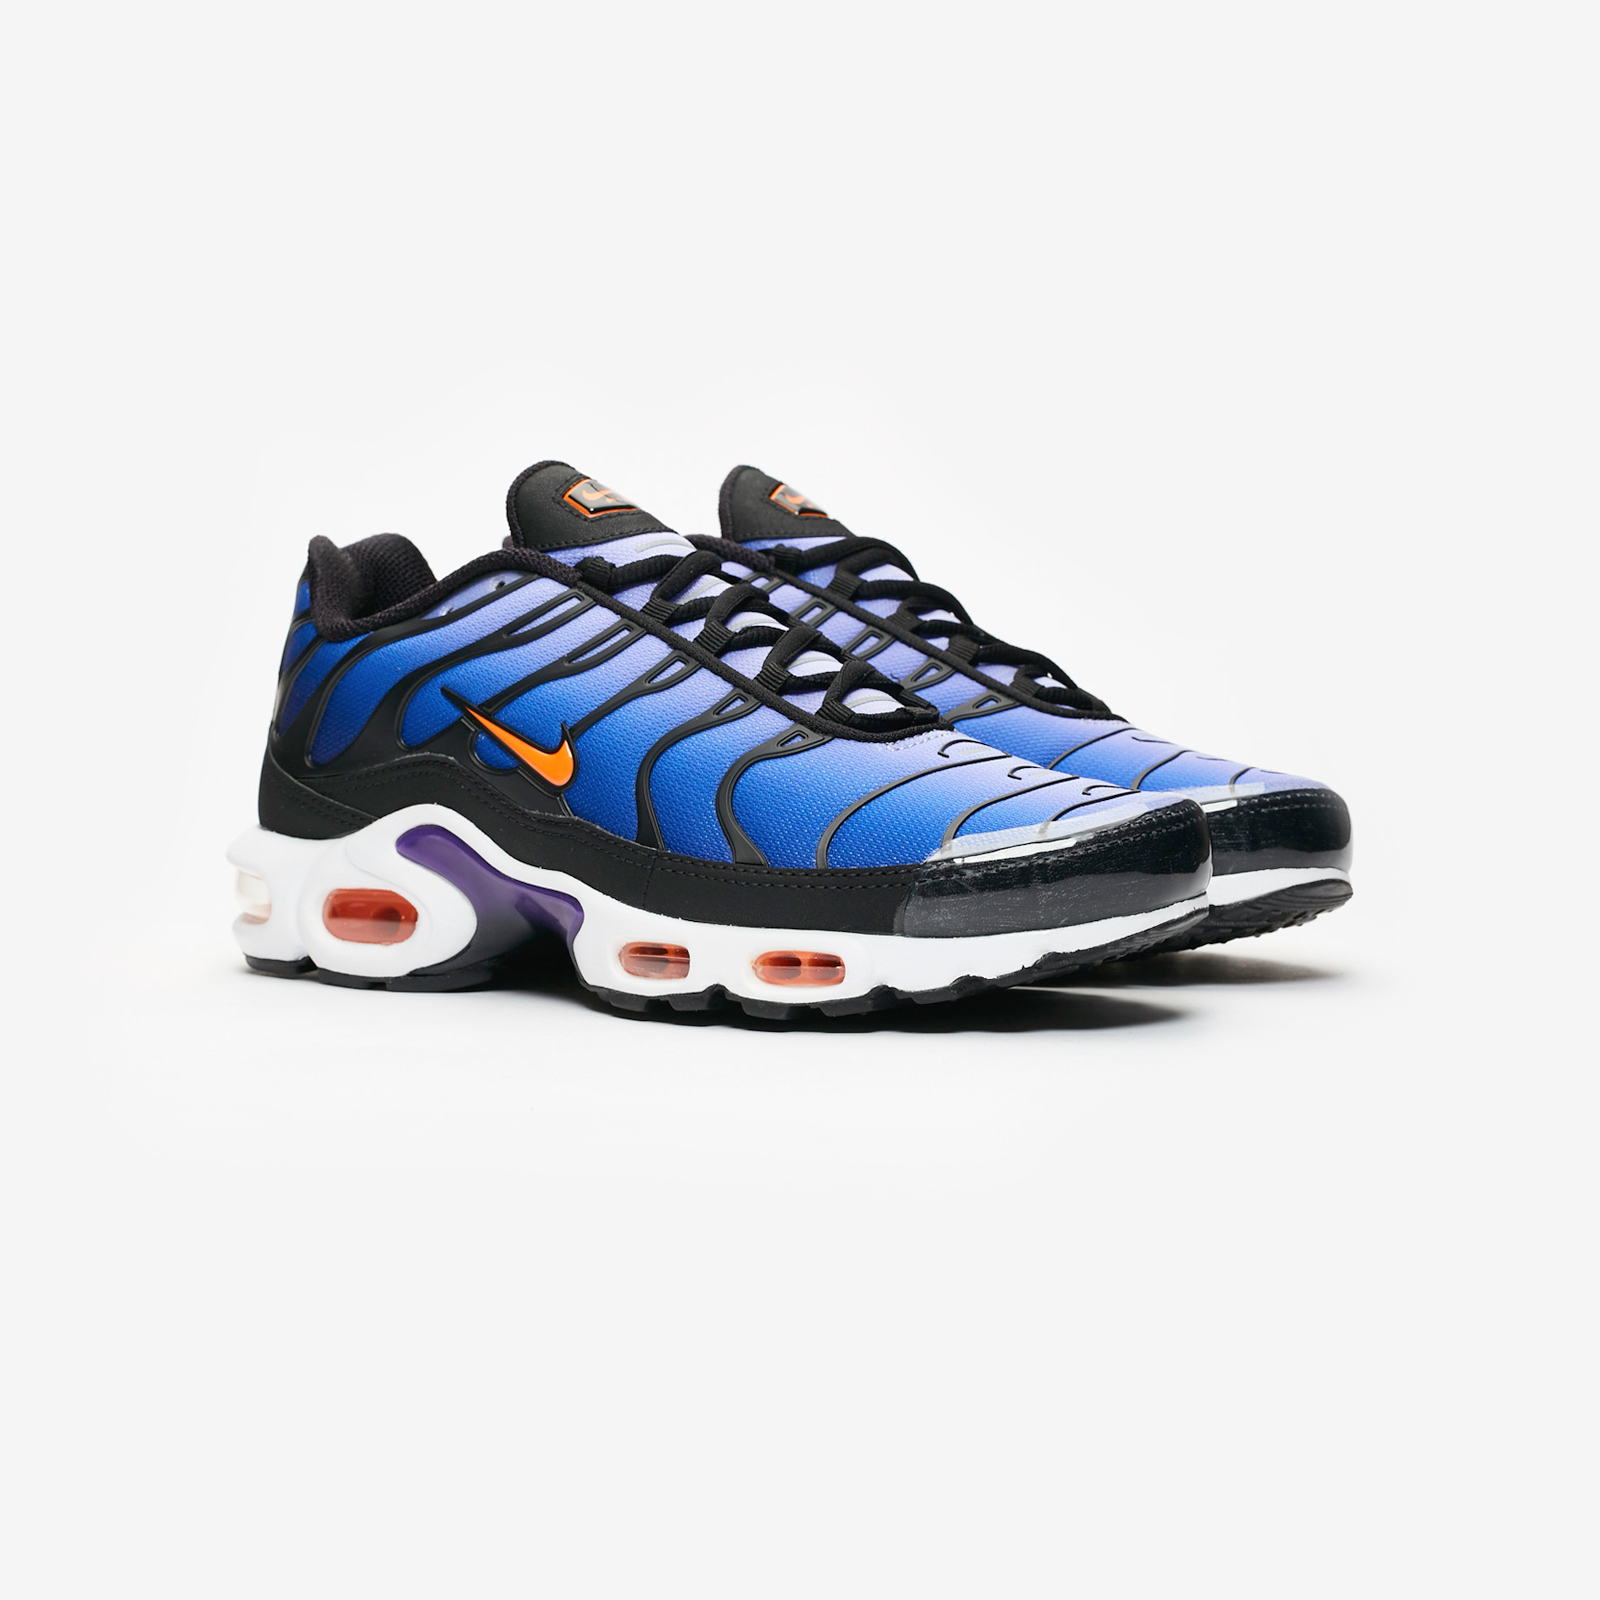 separation shoes 98612 932ea Nike Air Max Plus OG - Bq4629-002 - Sneakersnstuff ...